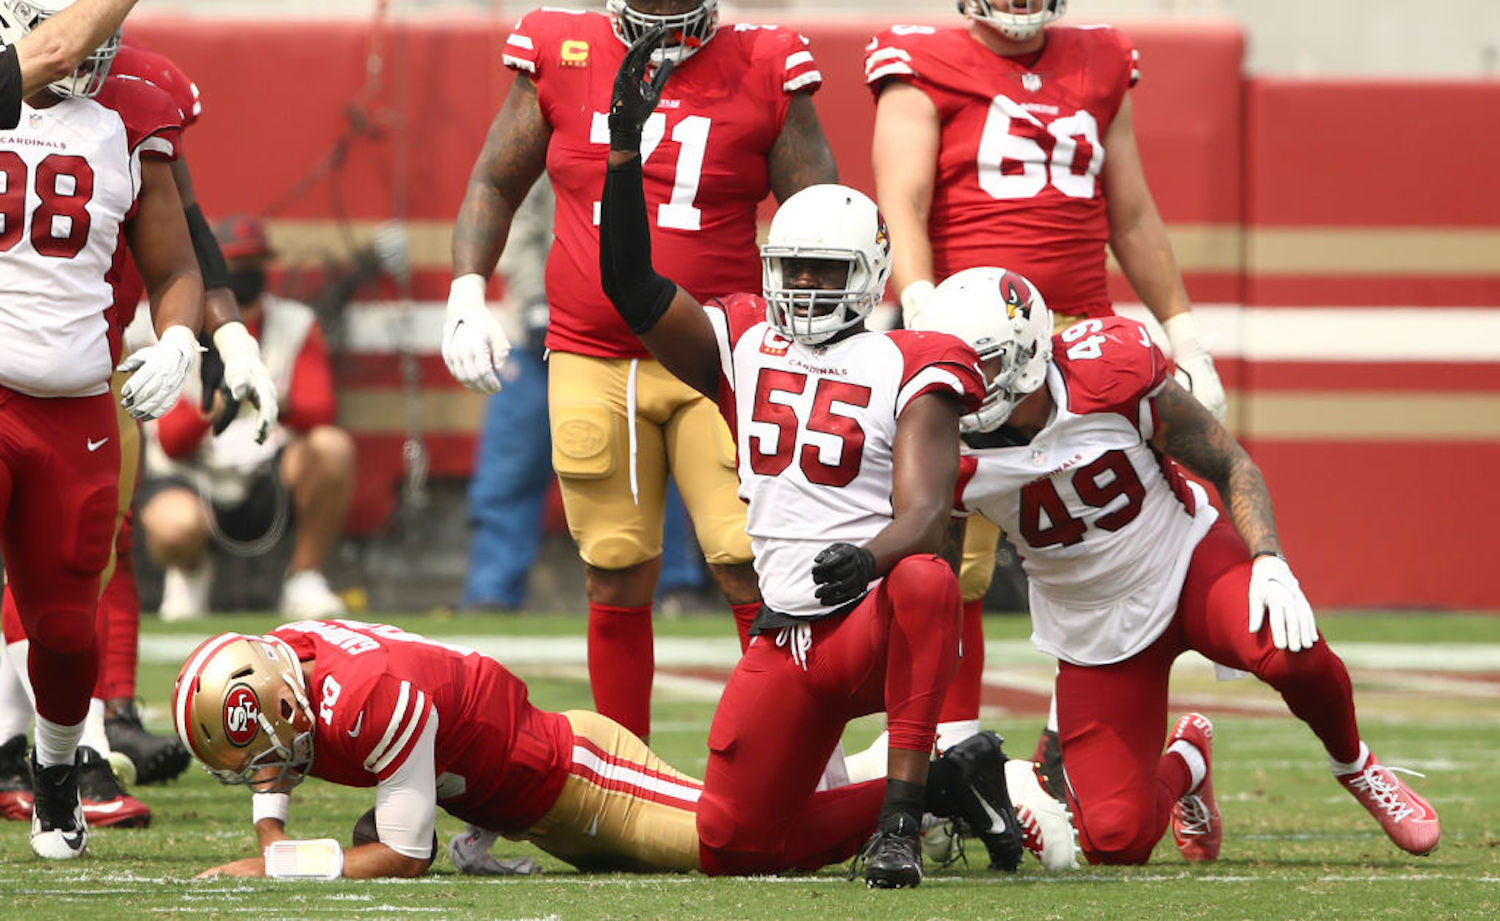 Chandler Jones is arguably the best pass rusher in the NFL, but he'll be spending the rest of the 2020 season on the sidelines with a biceps injury.